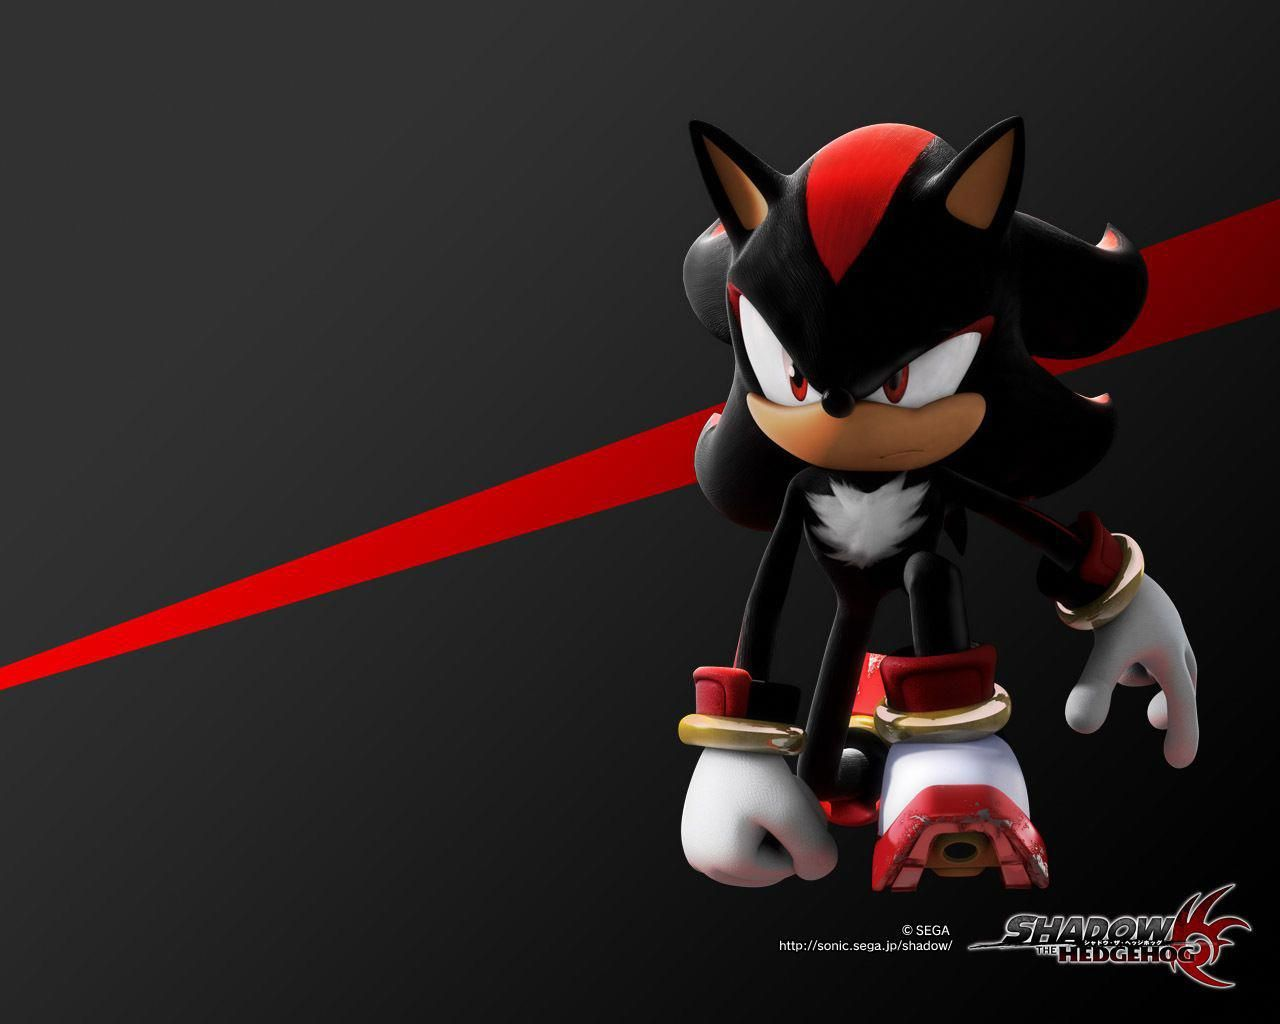 Shadow The Hedgehog Was Released At The End Of 2005 For The Playstation 2 Xbox And Nintendo Gamecube Continuing The Story Shadow Sonic Sonic Shadow El Erizo